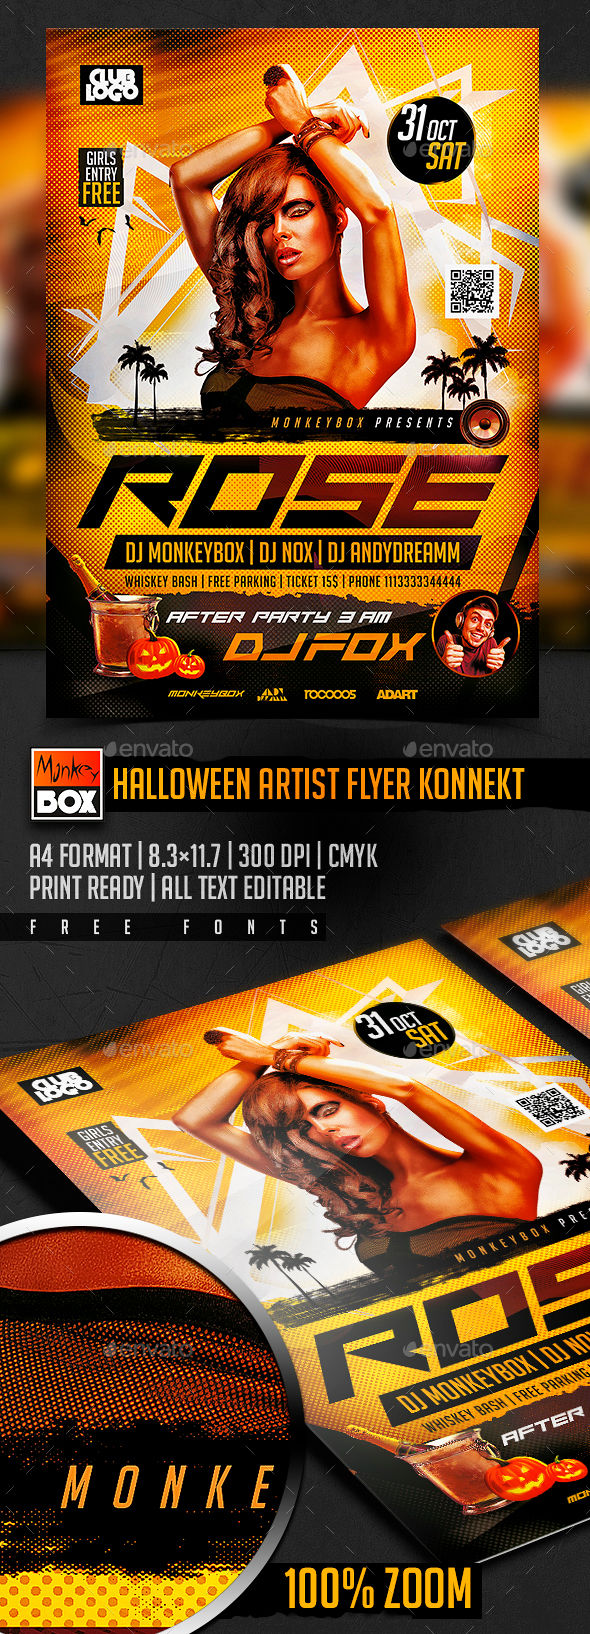 Halloween Artist Flyer Konnekt by MonkeyBOX (Halloween party flyer)